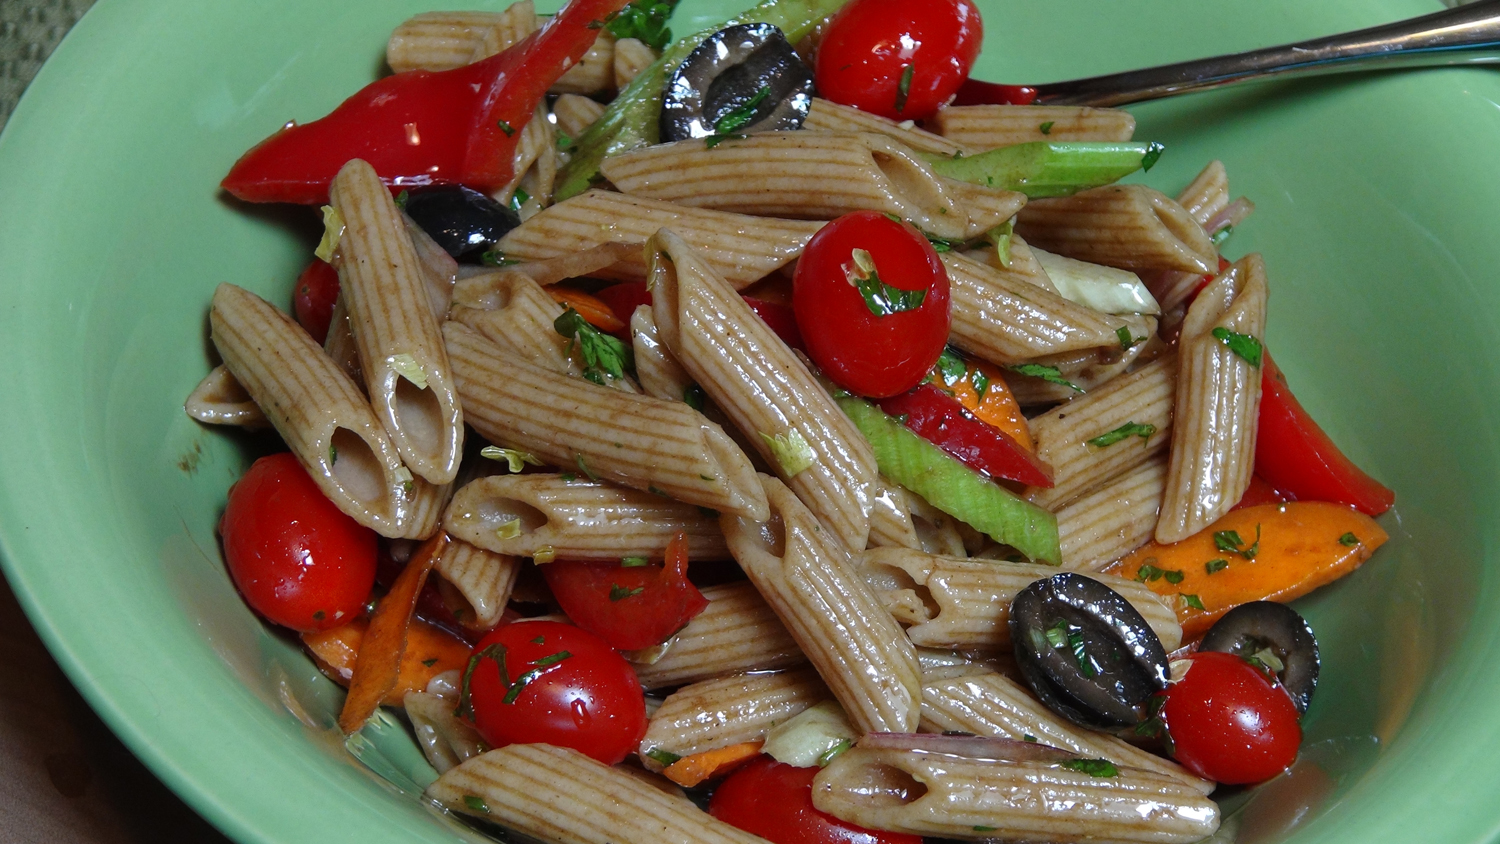 Pasta Salad Recipe with Balsamic Vinaigrette - The Frugal Chef